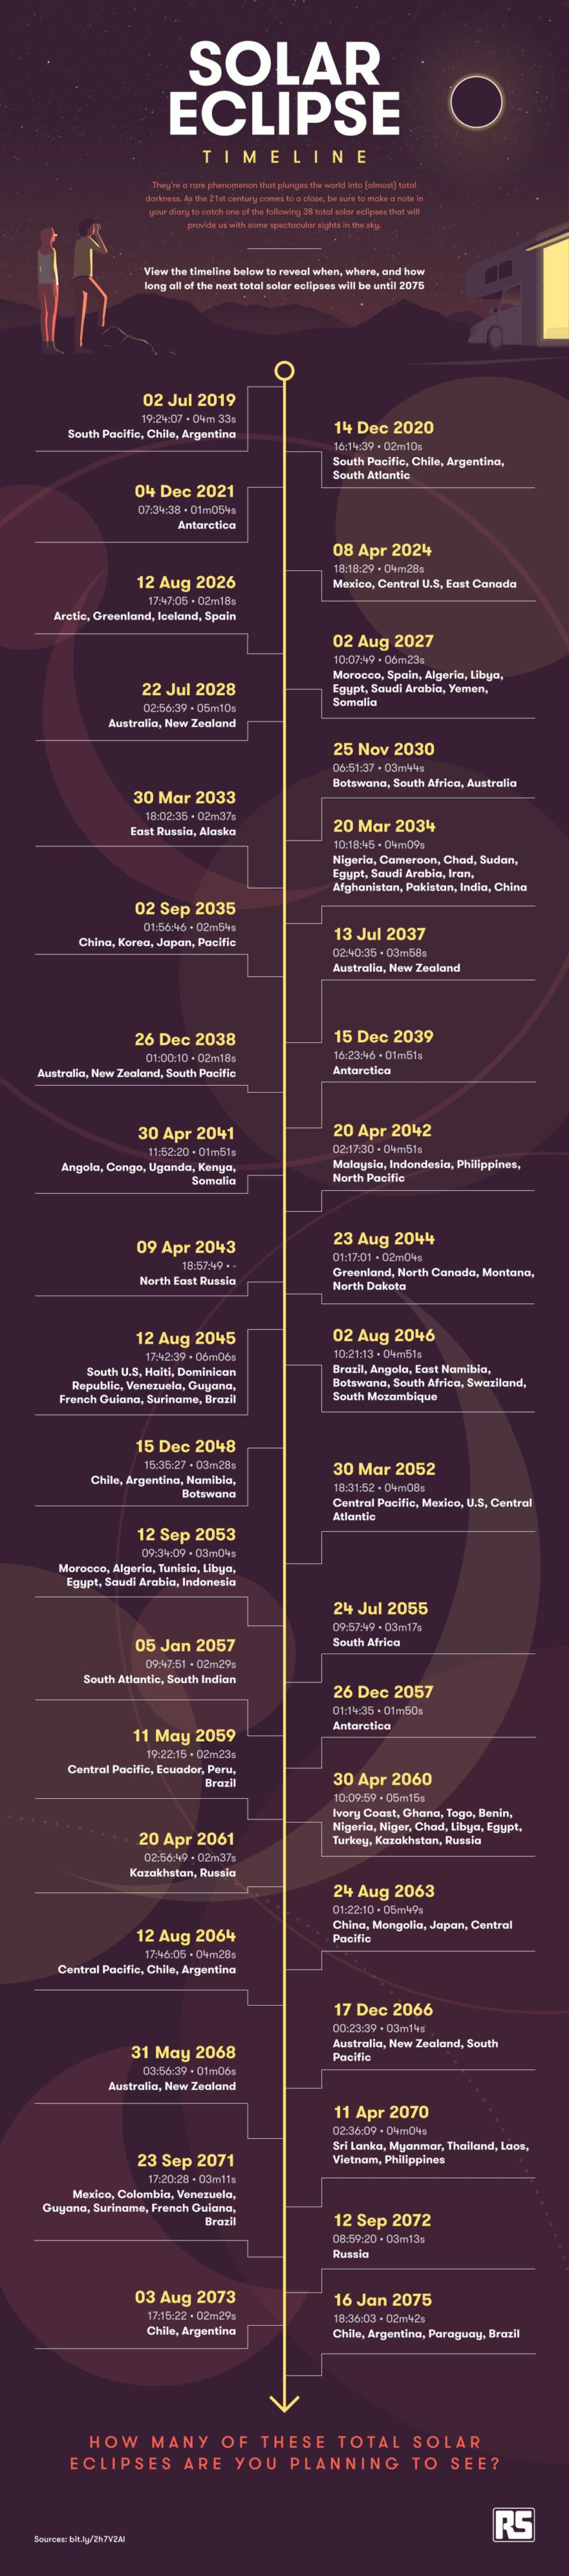 infographic, solar eclipse, total solar eclipse, upcoming solar eclipses, solar eclipse future, longest solar eclipse, shortest solar eclipse, best place to see the eclipse, two eclipses in one year